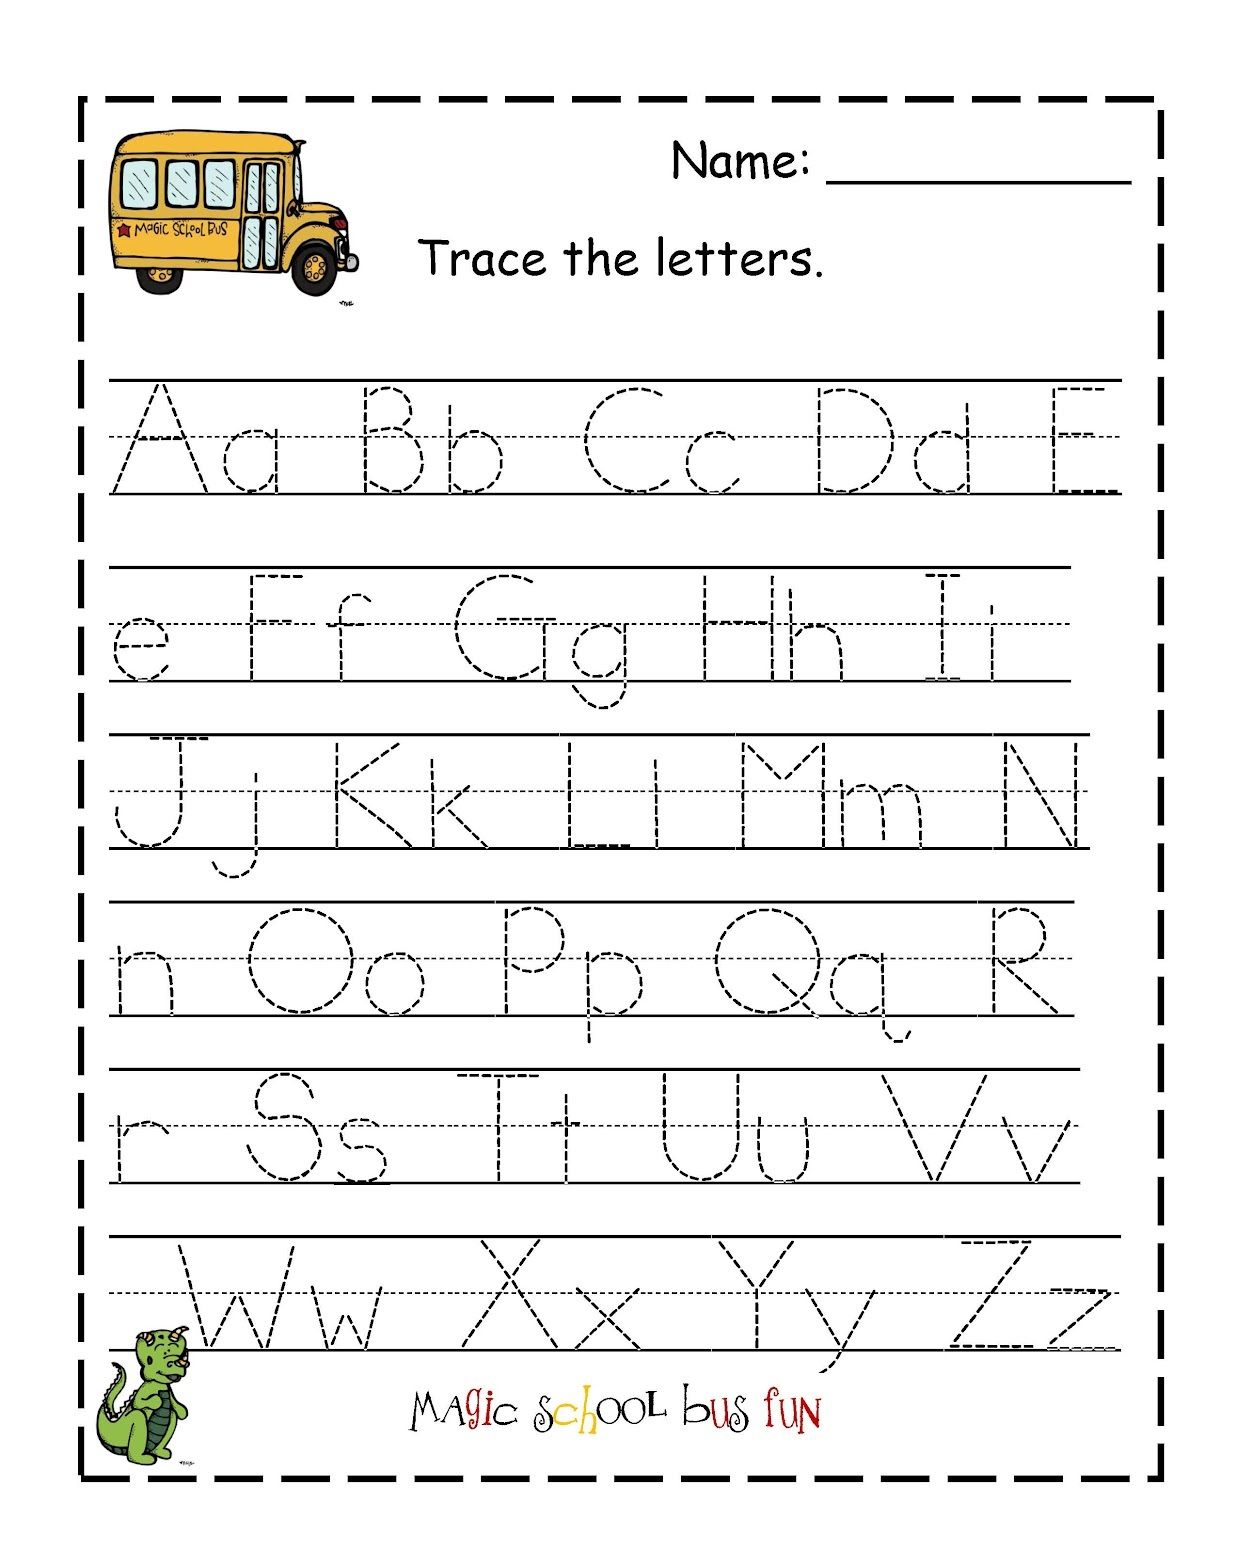 Traceable Letter Worksheets To Print | Activity Shelter | Printable Letter Worksheets